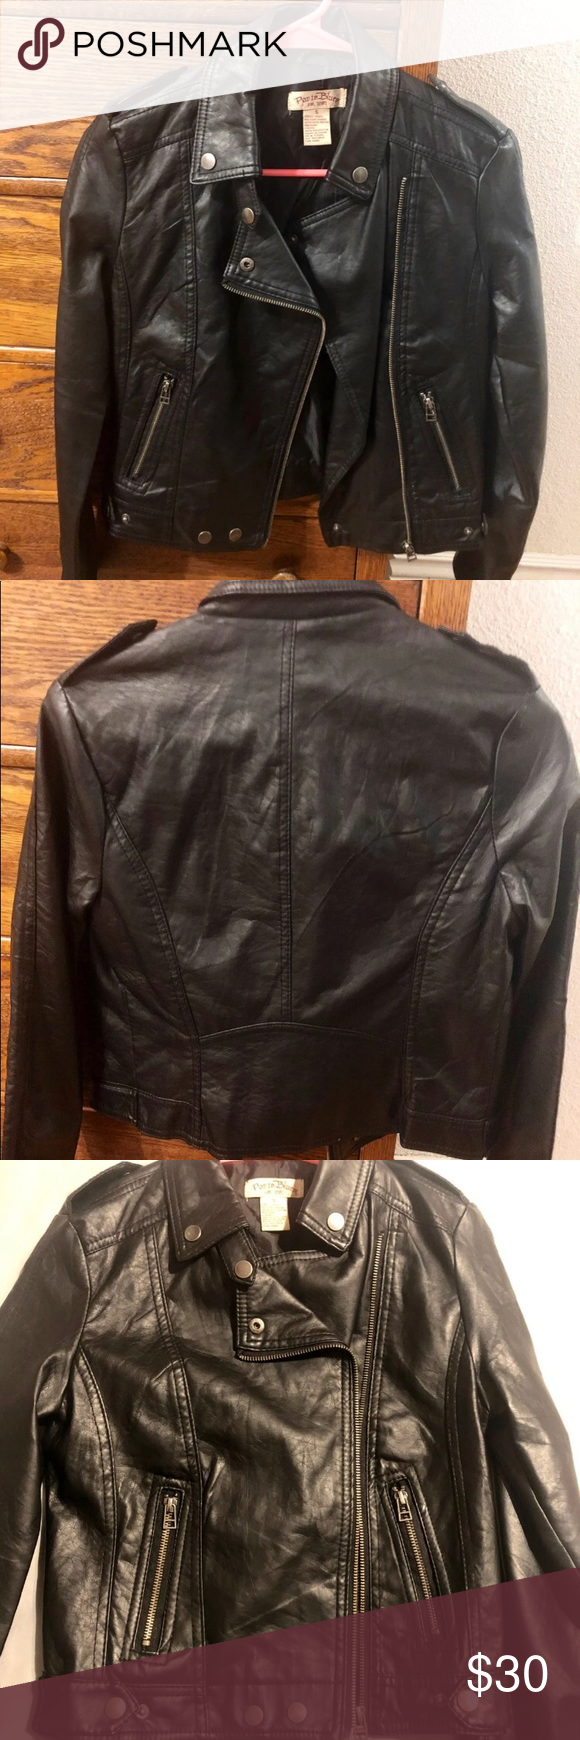 Faux Leather Jacket Paris Blues Faux Leather Jacket Like New Worn A Handful Of Times Juniors Size Small Smoke F Faux Leather Jackets Leather Jacket Jackets [ 1740 x 580 Pixel ]